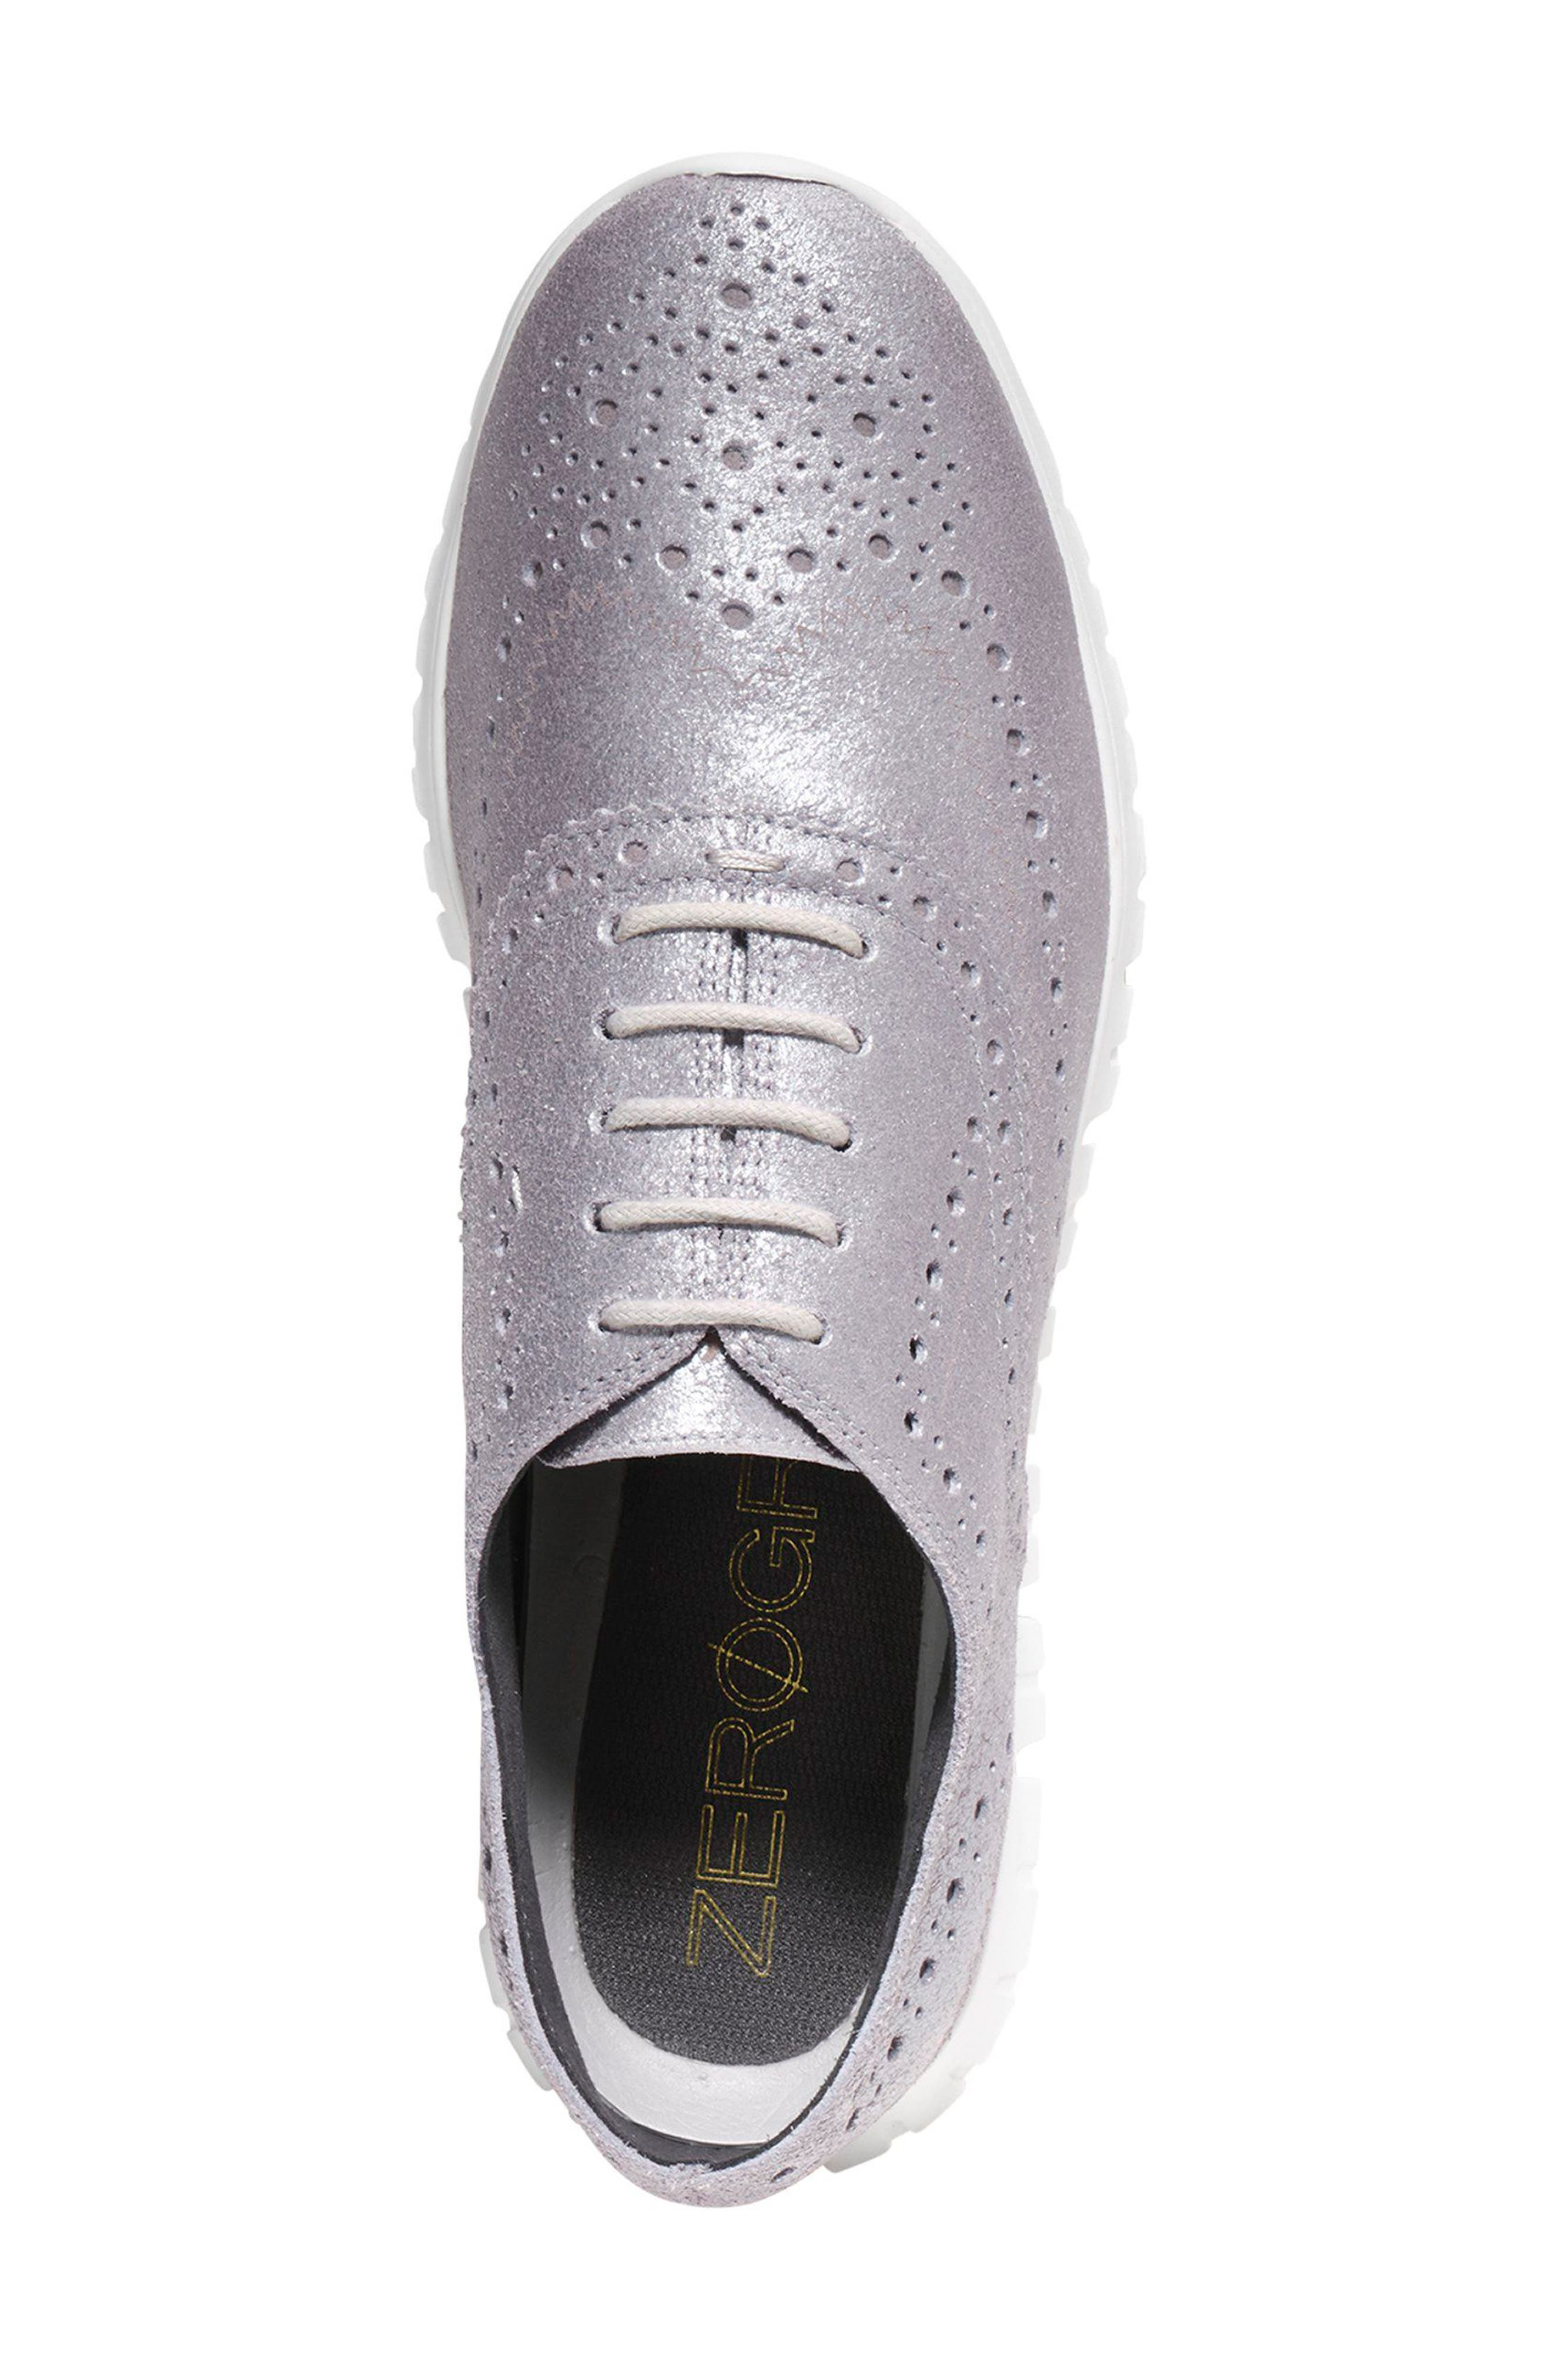 ZERØGRAND Wingtip Oxford Sneaker,                             Alternate thumbnail 4, color,                             020